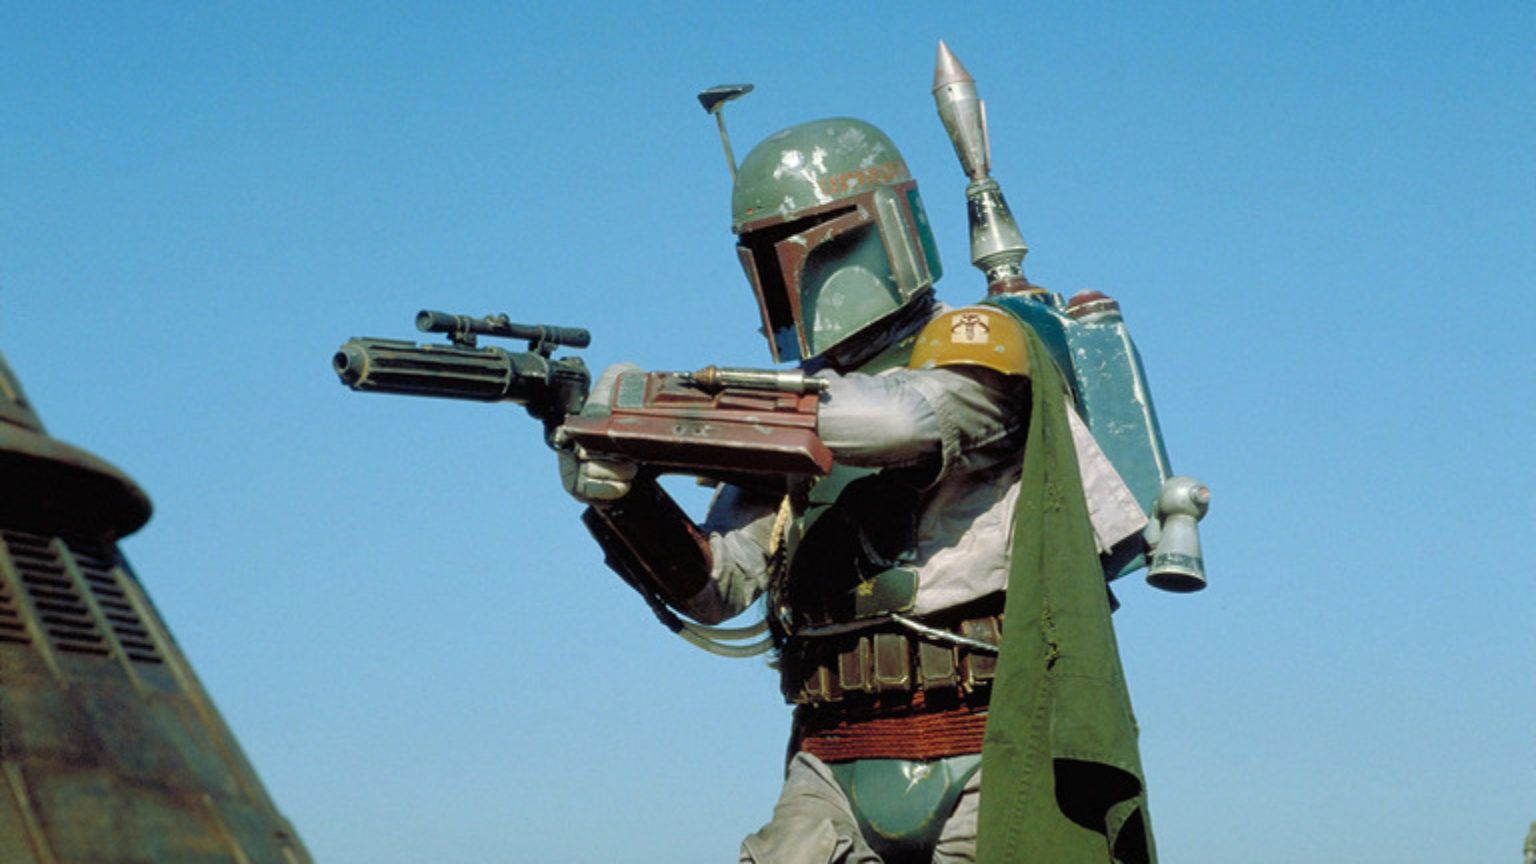 """<strong>UPDATED with <a rel=""""nofollow"""" href=""""https://deadline.com/tag/boba-fett/"""">Boba Fett</a> movie news:</strong>We've confirmed reports that Disney/Lucasfilm is no longer moving forward with a Boba Fett movie for the time being, instead zeroing on the upcoming Jon Favreau-executive produced<em><a rel=""""nofollow"""" href=""""https://deadline.com/tag/star-wars/"""">Star Wars</a></em>series<em><a rel=""""nofollow"""" href=""""https://deadline.com/tag/the-mandalorian/"""">The Mandalorian</a>,</em>which the studio is prepping for its upcoming streaming service.  Reportedly last night, <a rel=""""nofollow"""" href=""""https://twitter.com/ErickWeber/status/1055650705707433984"""" rel=""""nofollow"""">Lucasfilm boss Kathleen Kennedy toldCritics Choice Association journalist Erick Weber</a> at a<em>Black Panther</em>awards receptionthat the<em>Boba Fe…</em>"""